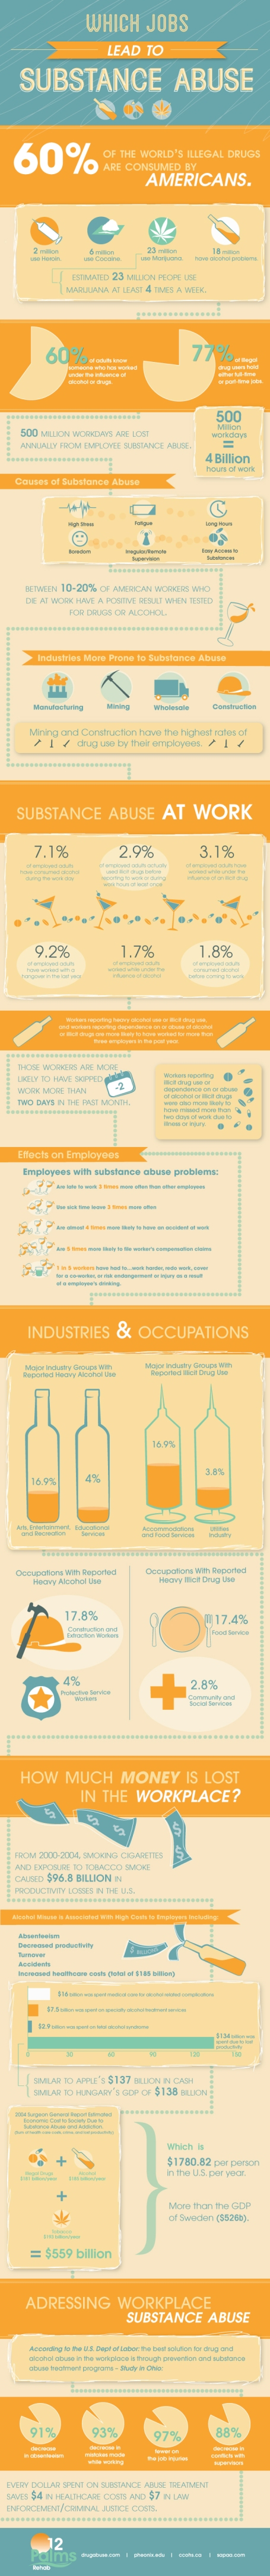 Which jobs lead to substance abuse?